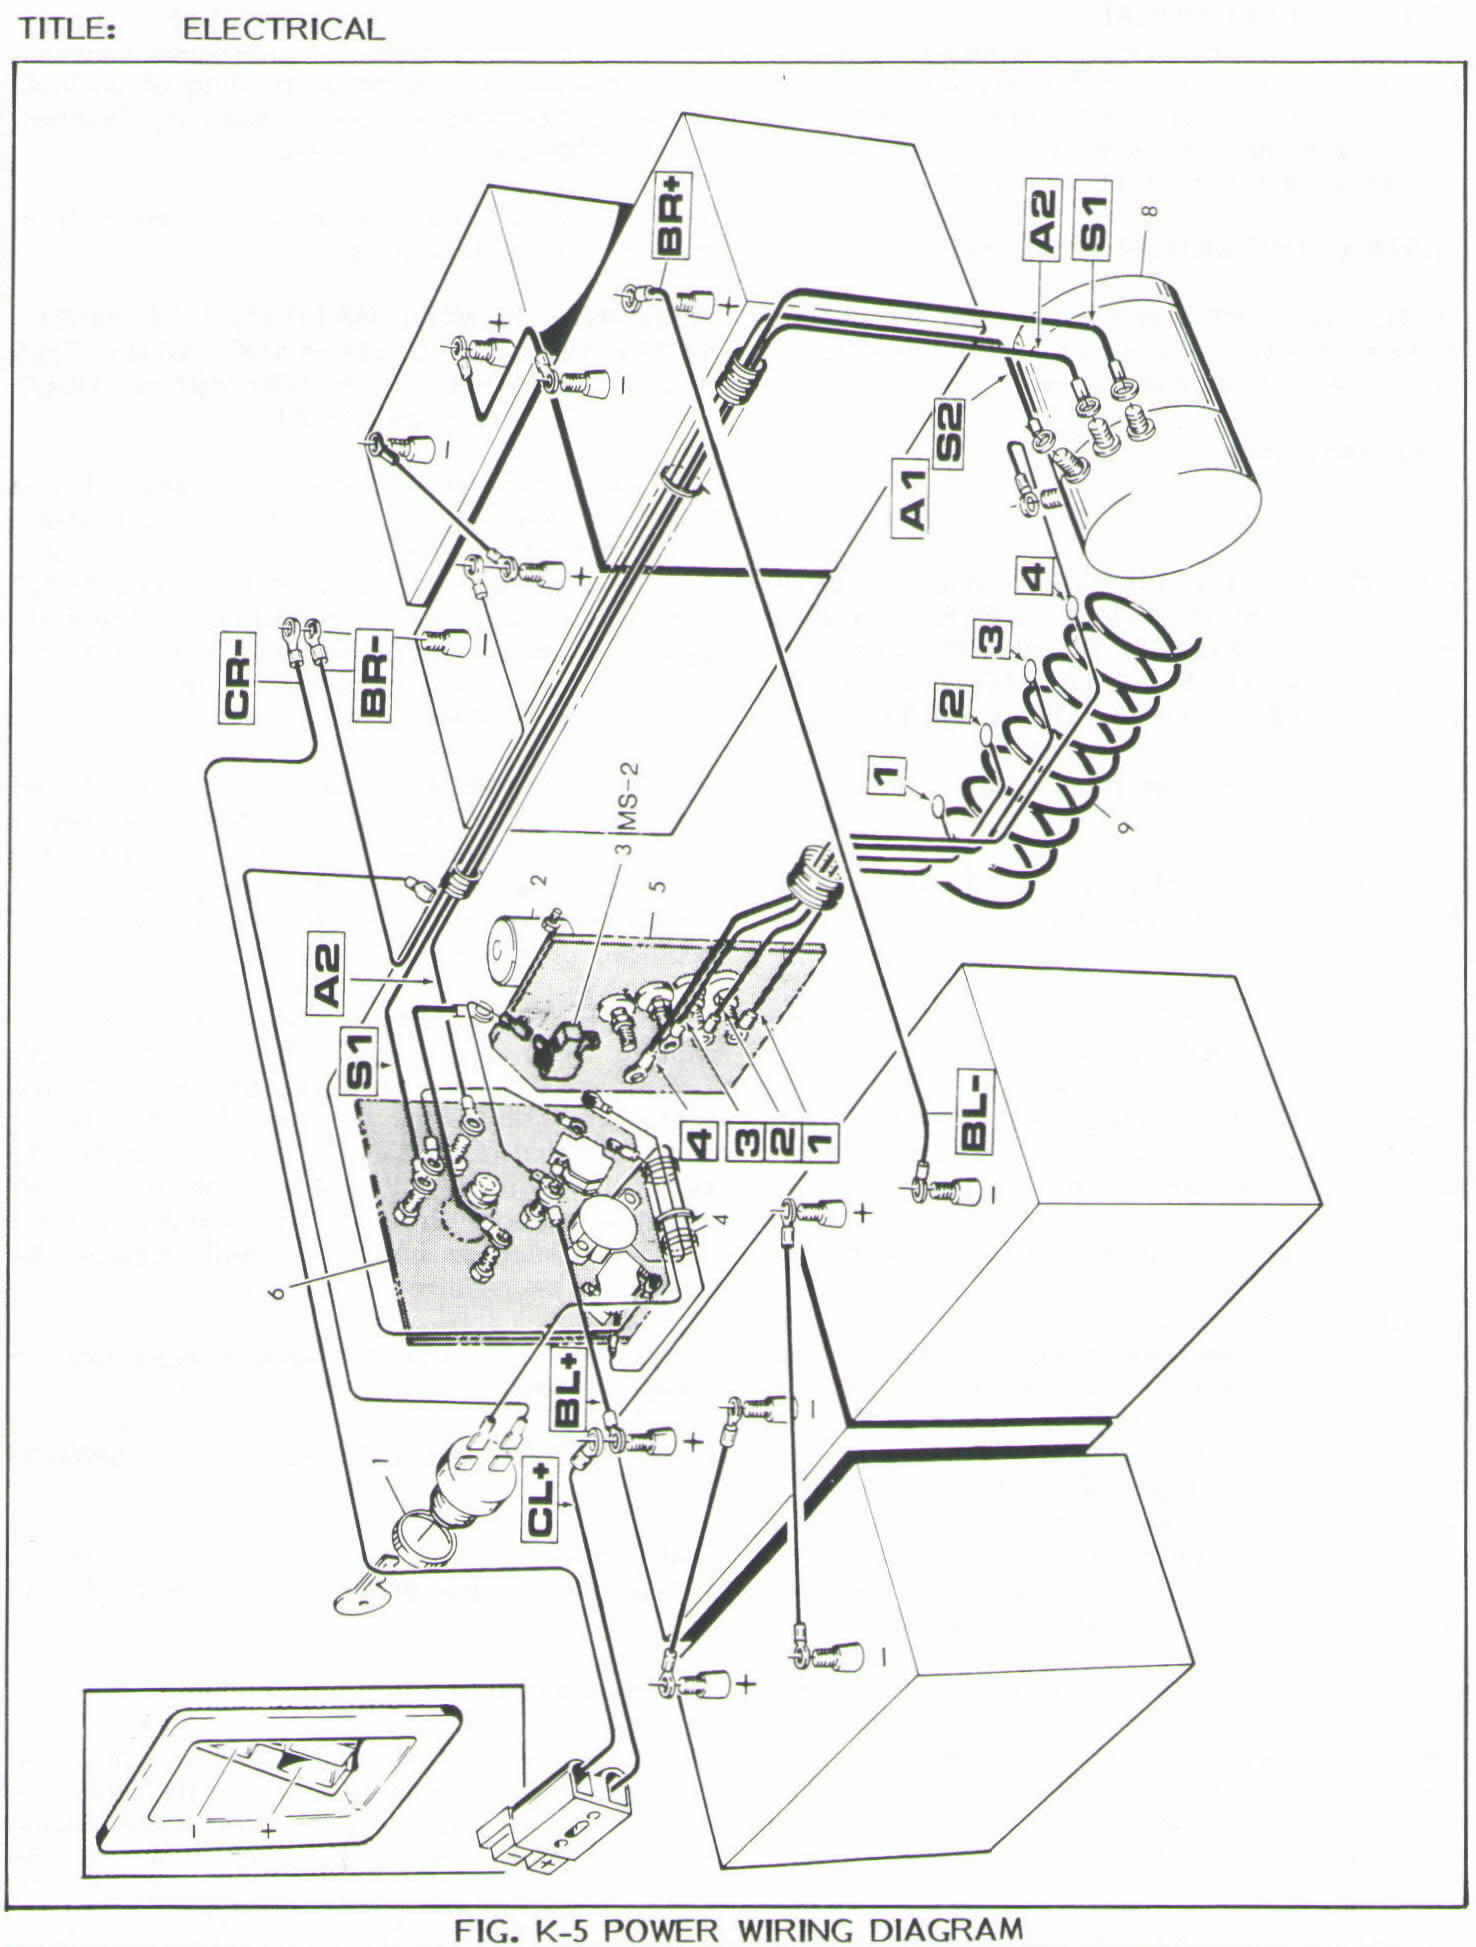 DL_2513] 36V Wiring Diagram Free Download Wiring Diagrams Pictures Wiring  Free Diagram | 1989 Electric Club Car Wiring Diagram Free Picture |  | Chro Ally Joami Bletu Orsal Mill Icism Dome Mohammedshrine Librar Wiring 101